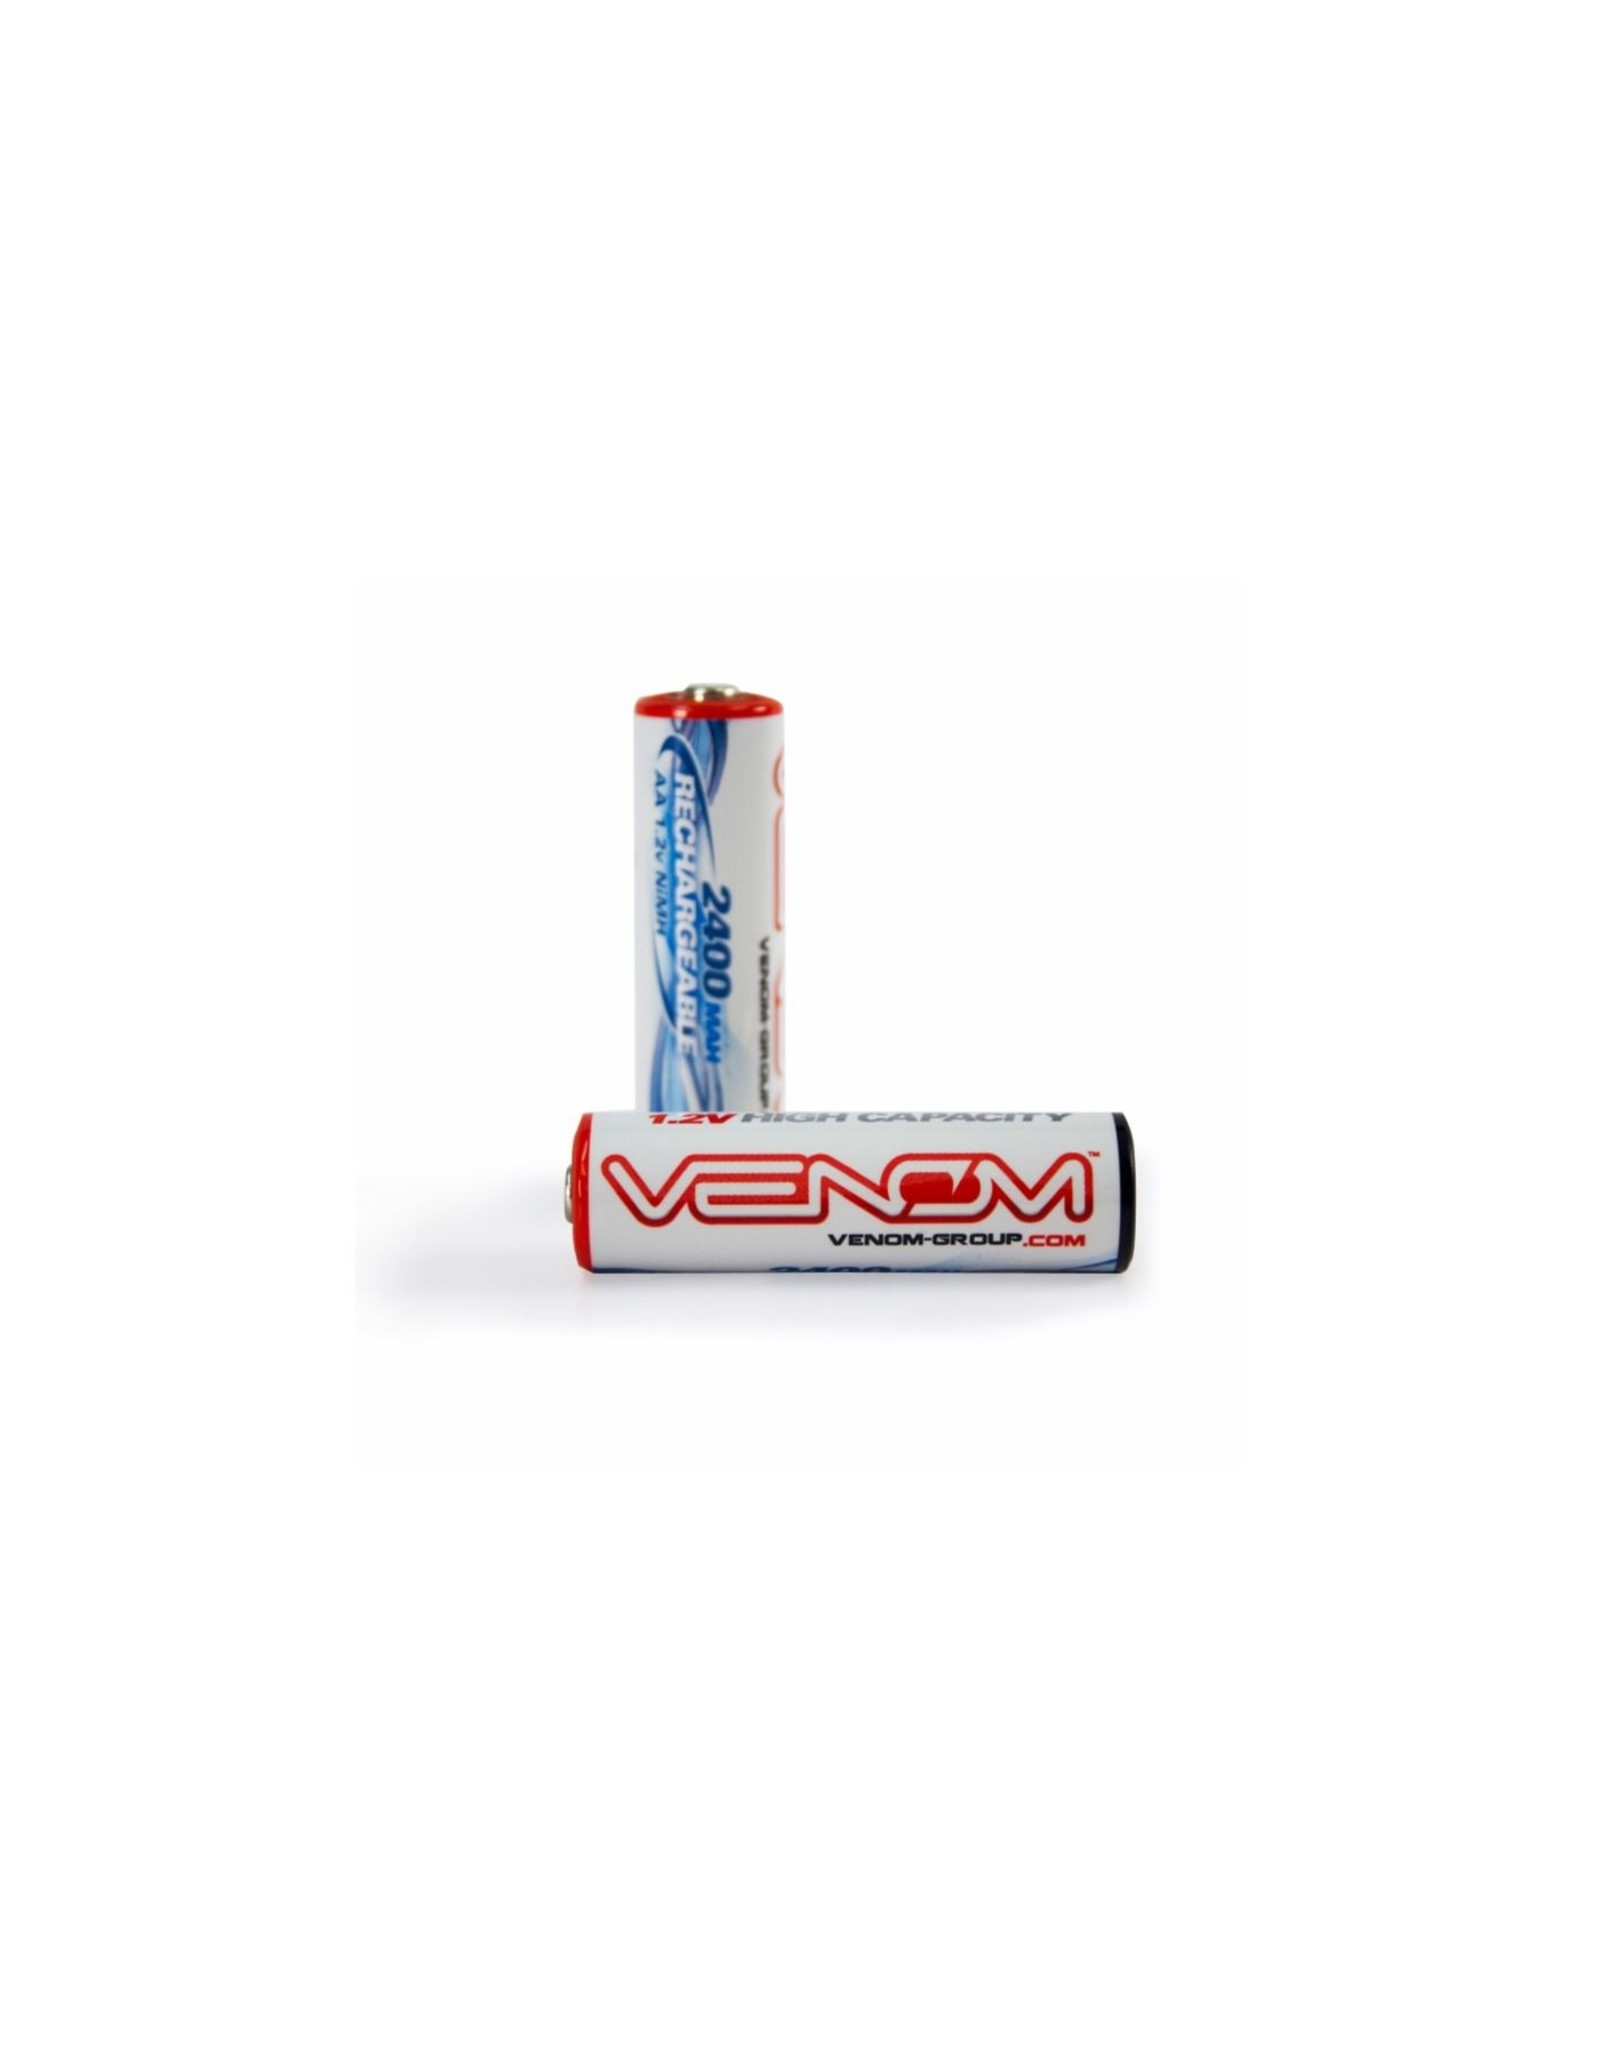 Venom Power AA NiMH 2400mAh Rechargeable Battery 4pc (VNR1521)